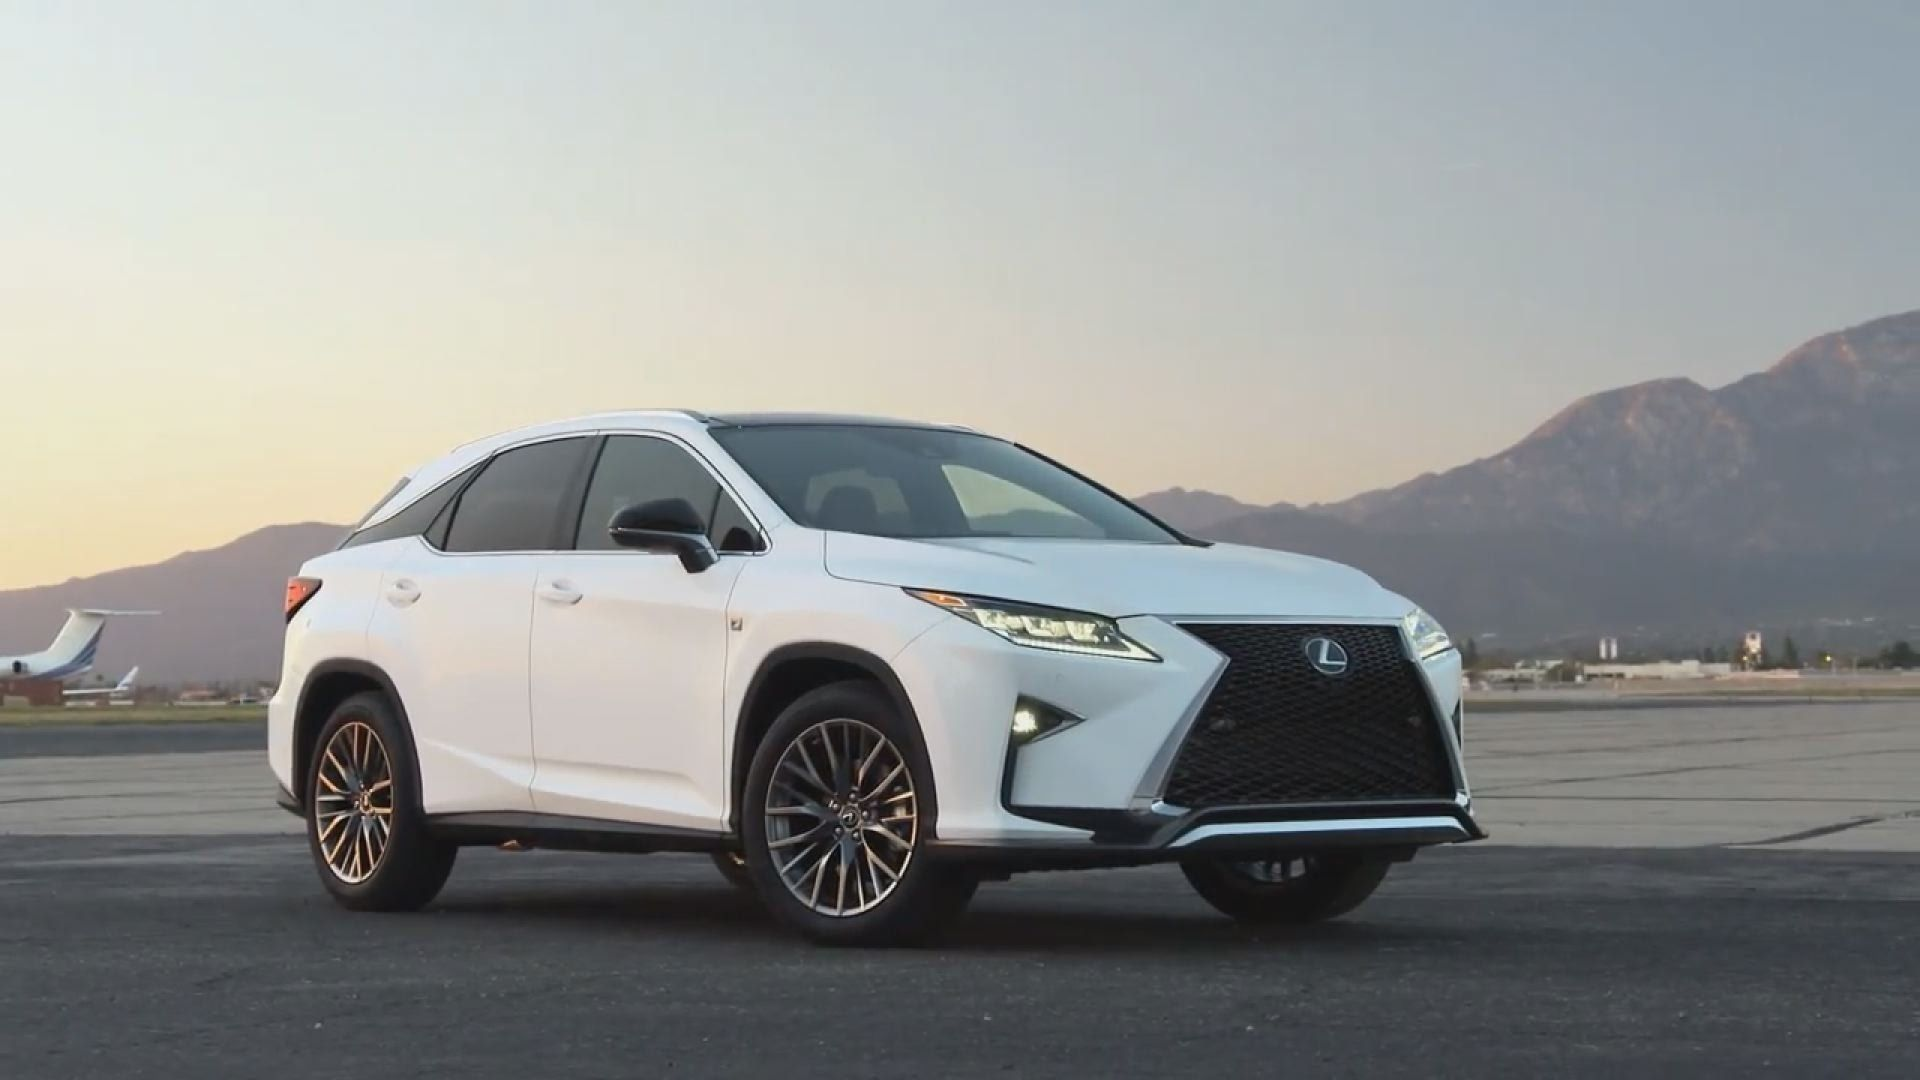 2017 Lexus RX 450h Hybrid Weight